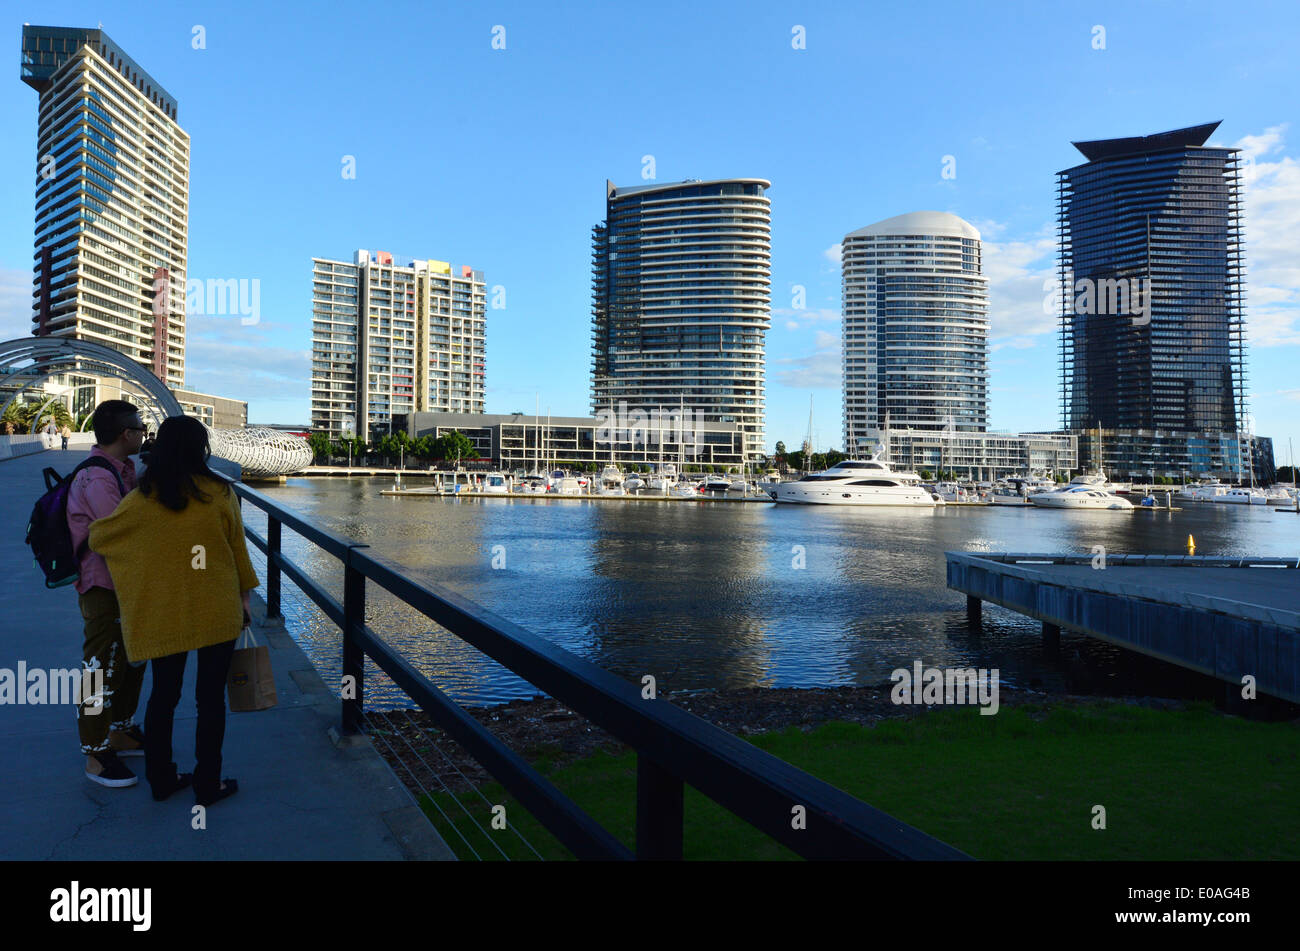 New Towers rises above the Yarra river in Docklands Melbourne Victoria Australia. - Stock Image